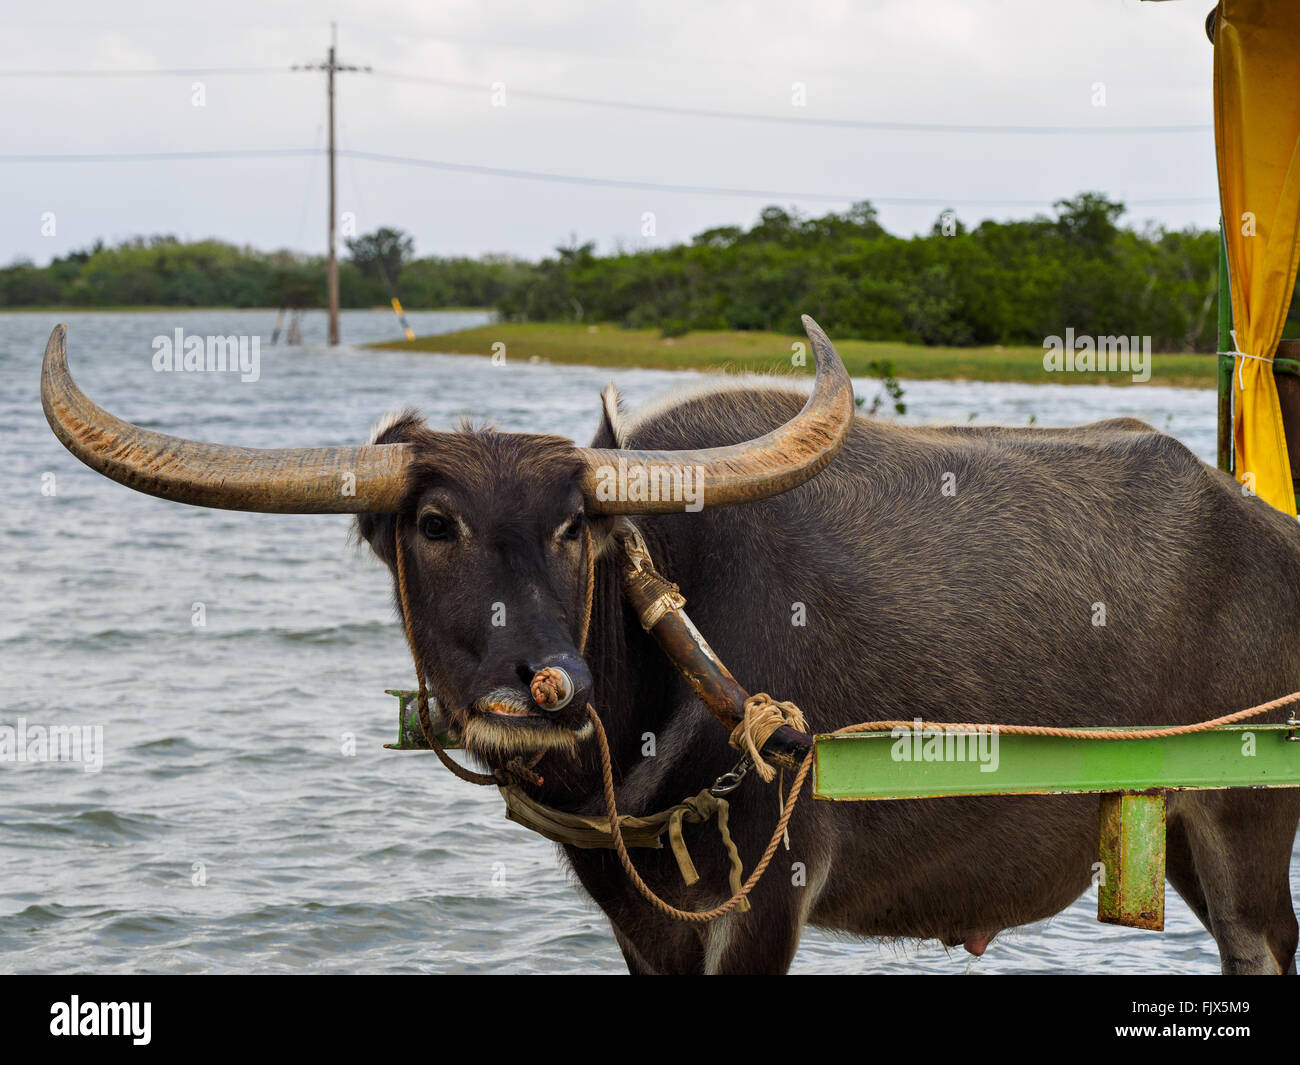 Horned Bull Tied To Cart By Lake - Stock Image